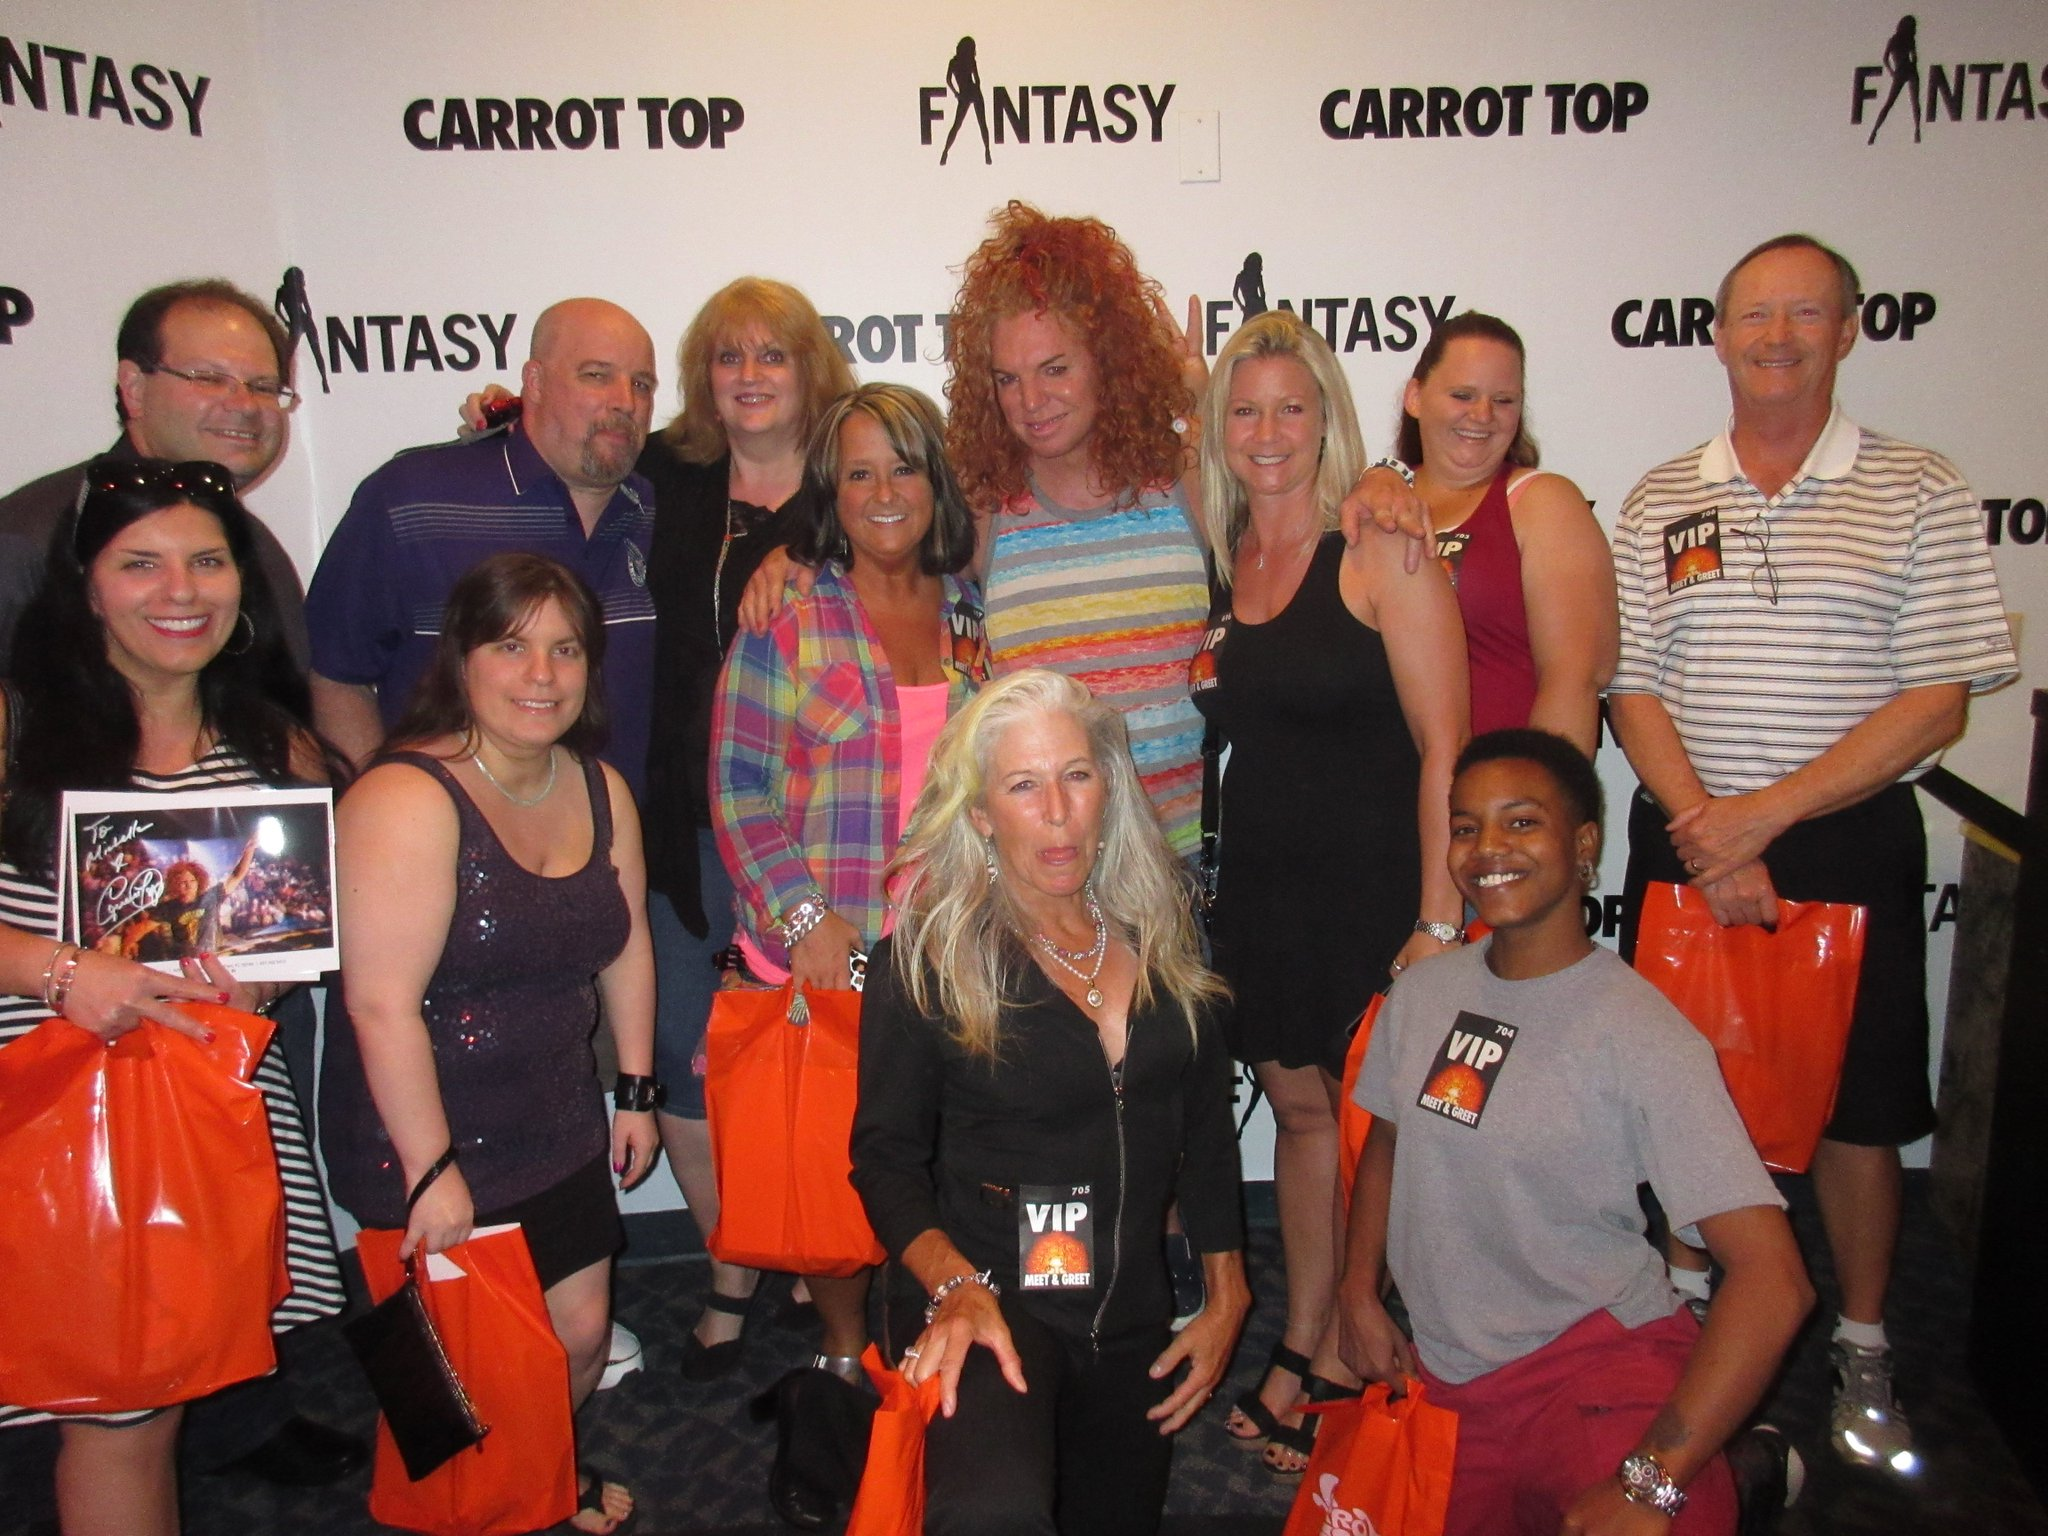 Carrot top on twitter what a great way to kick off your weekend carrot top on twitter what a great way to kick off your weekend with a ctmeetngreet at the luxorlv get yours at the box office or m4hsunfo